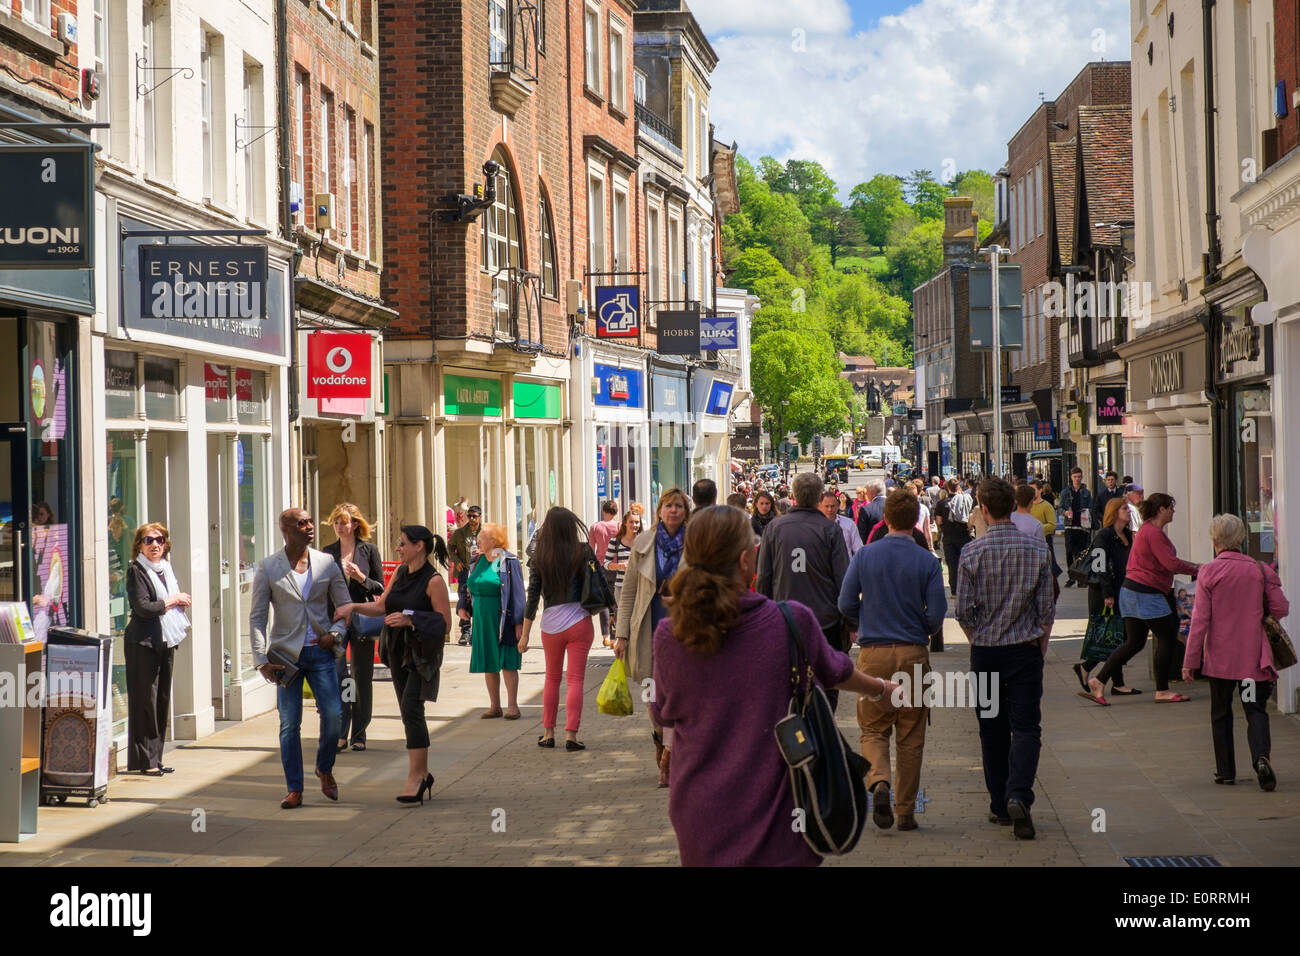 Busy shopping street UK, with shops in Winchester, Hampshire - Stock Image